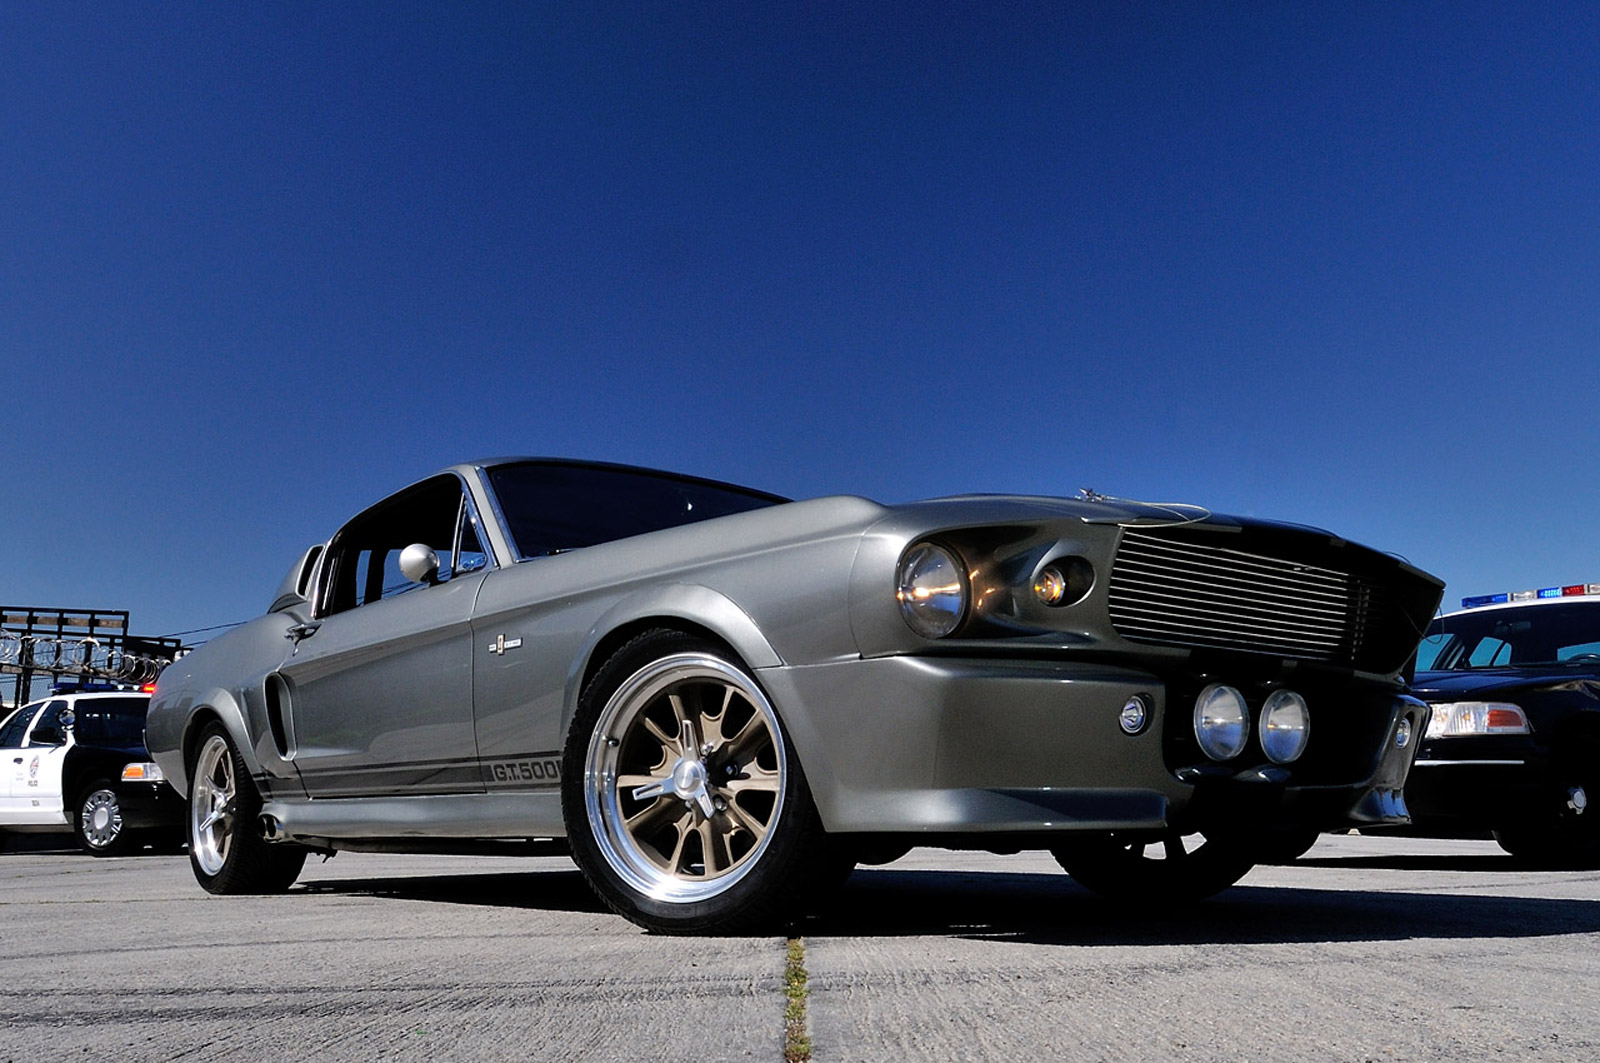 1967 Ford Mustang Eleanor From Gone In 60 Seconds Up For